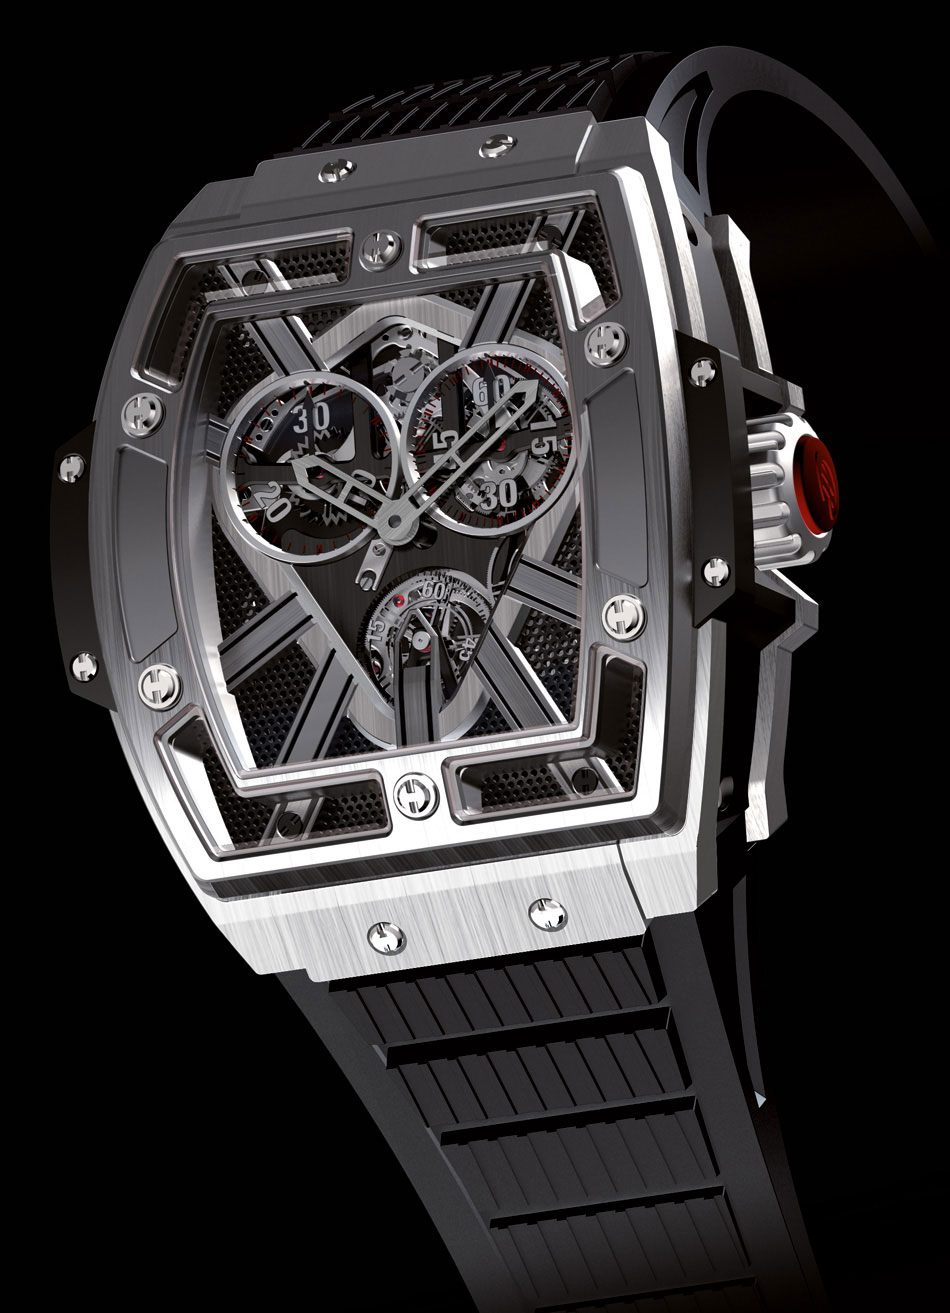 Hublot Masterpiece MP-01 Watch